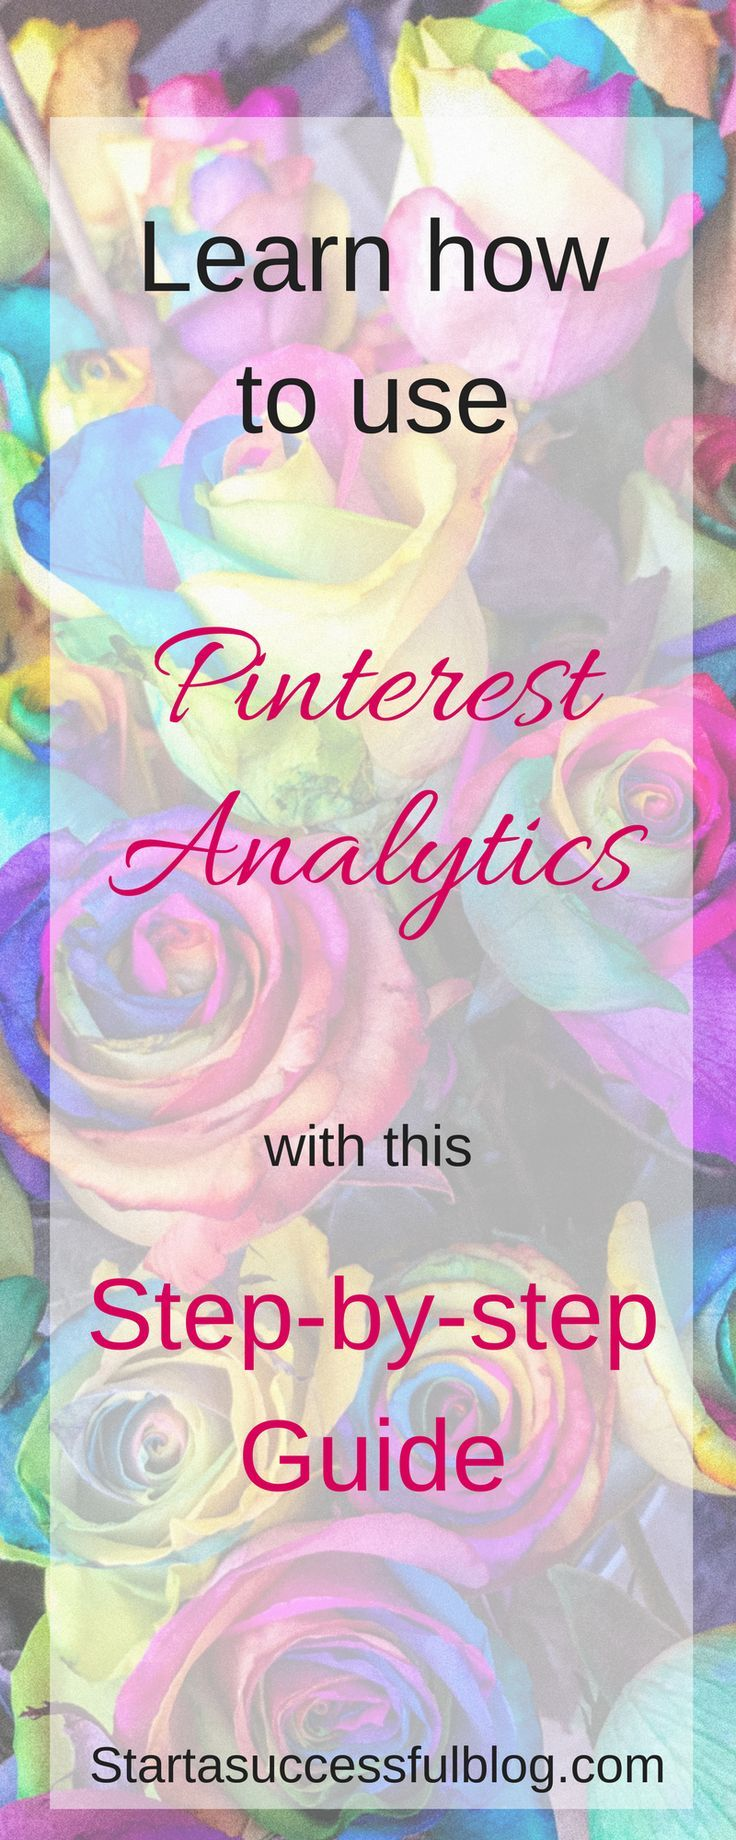 Are you getting the results you want from Pinterest? If not, it's time to up your Pinterest game! If you don't know where to start, you aren't alone! Step 1 is understanding and using your Pinterest Analytics to find problem areas in your pins, boards, and profile. Once you've fixed those mistakes it's time to create an amazing Pinterest strategy that will drive tons of traffic to your site!!!